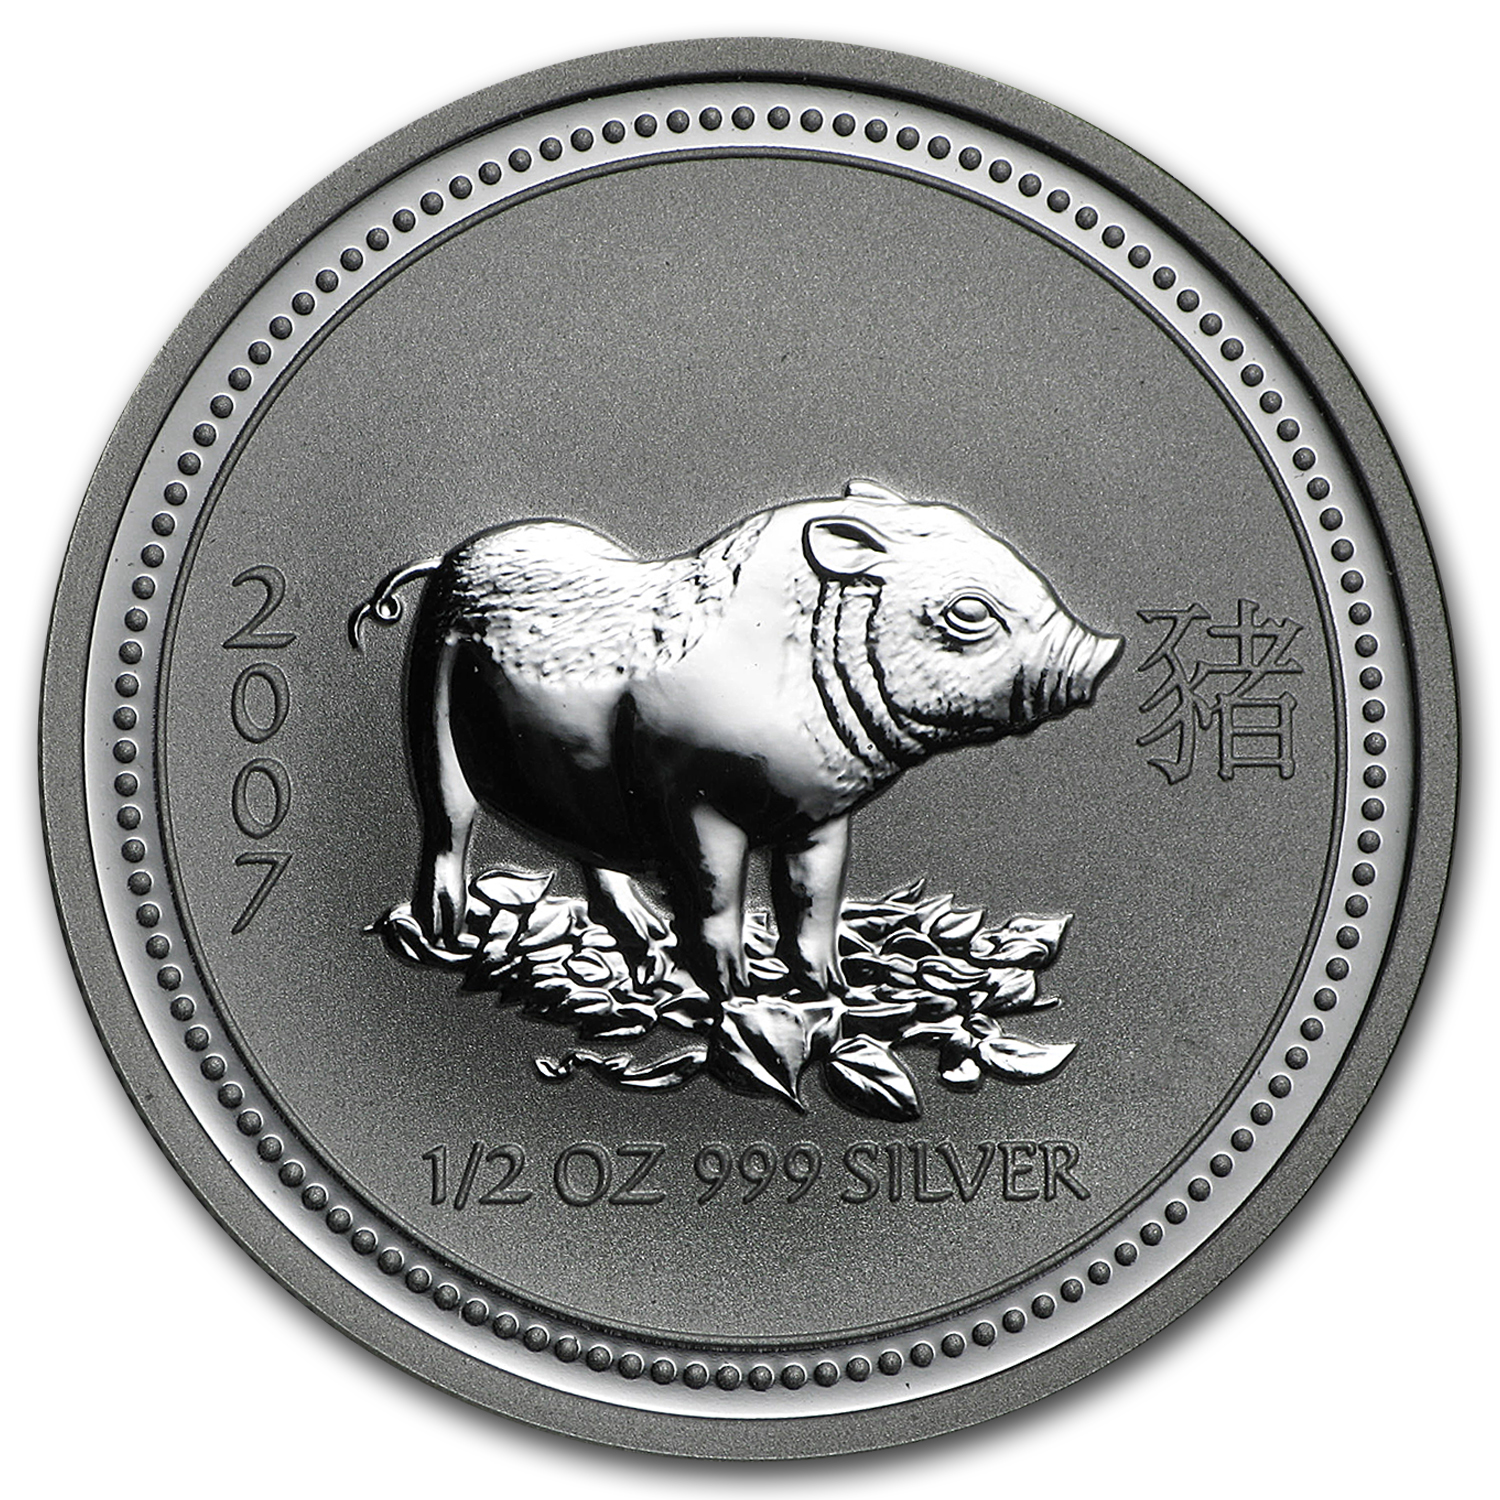 2007 Australia 1/2 oz Silver Year of the Pig BU